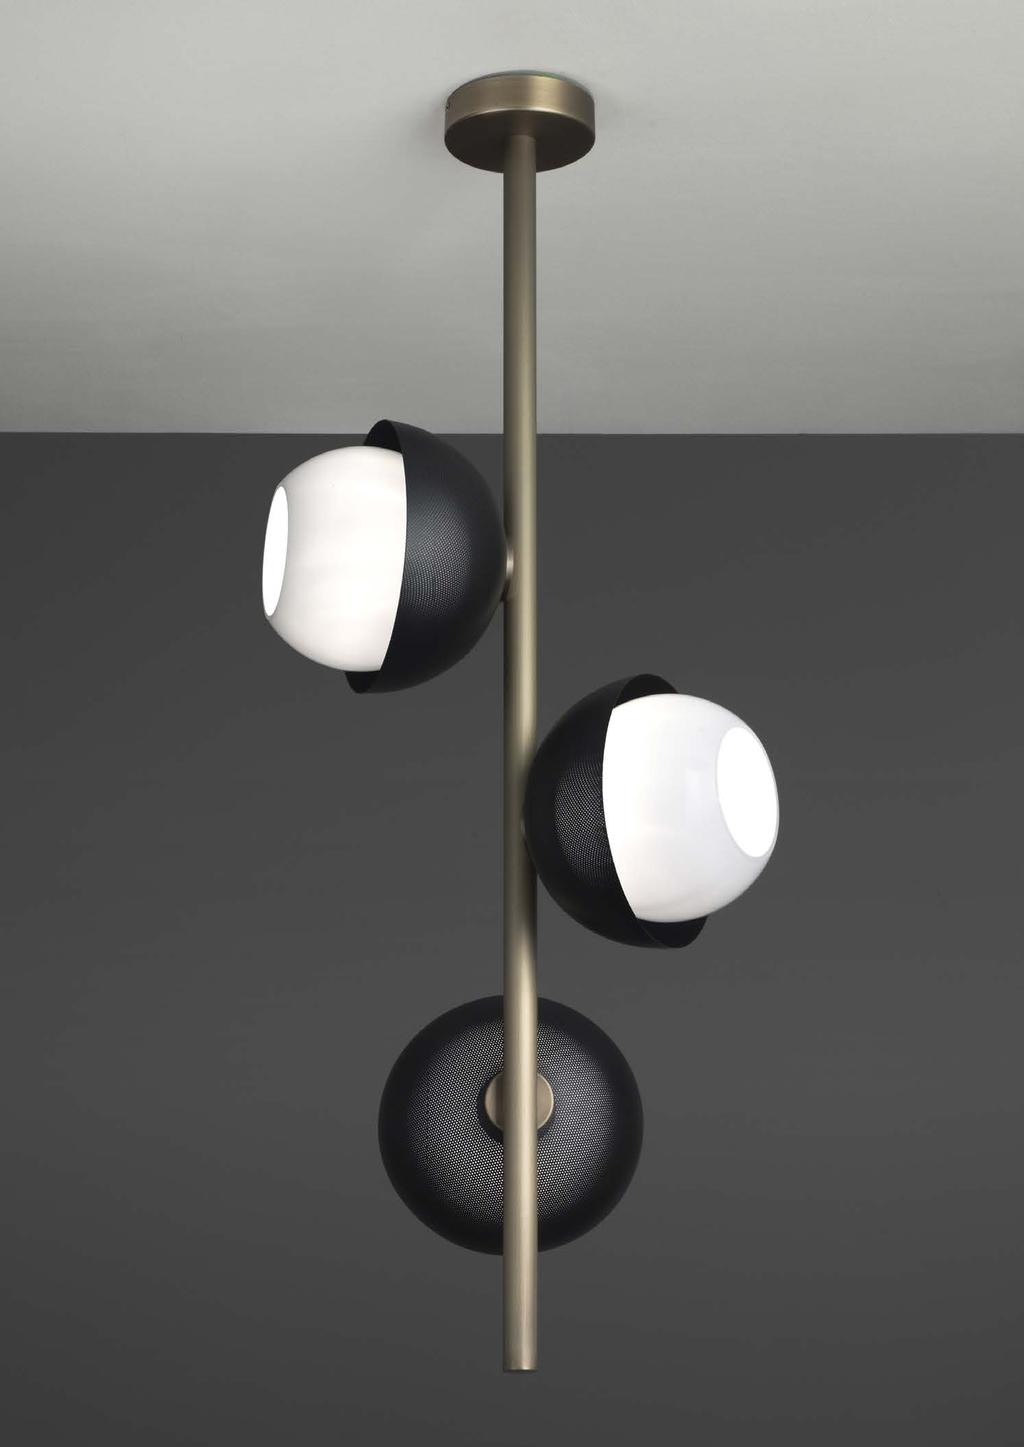 URBAN SUSPENSION 3 96cm-37 8 Ø 38cm-15 Suspended lamp with diffuse light and white, tobacco or smoke Murano blown glass diffusers.